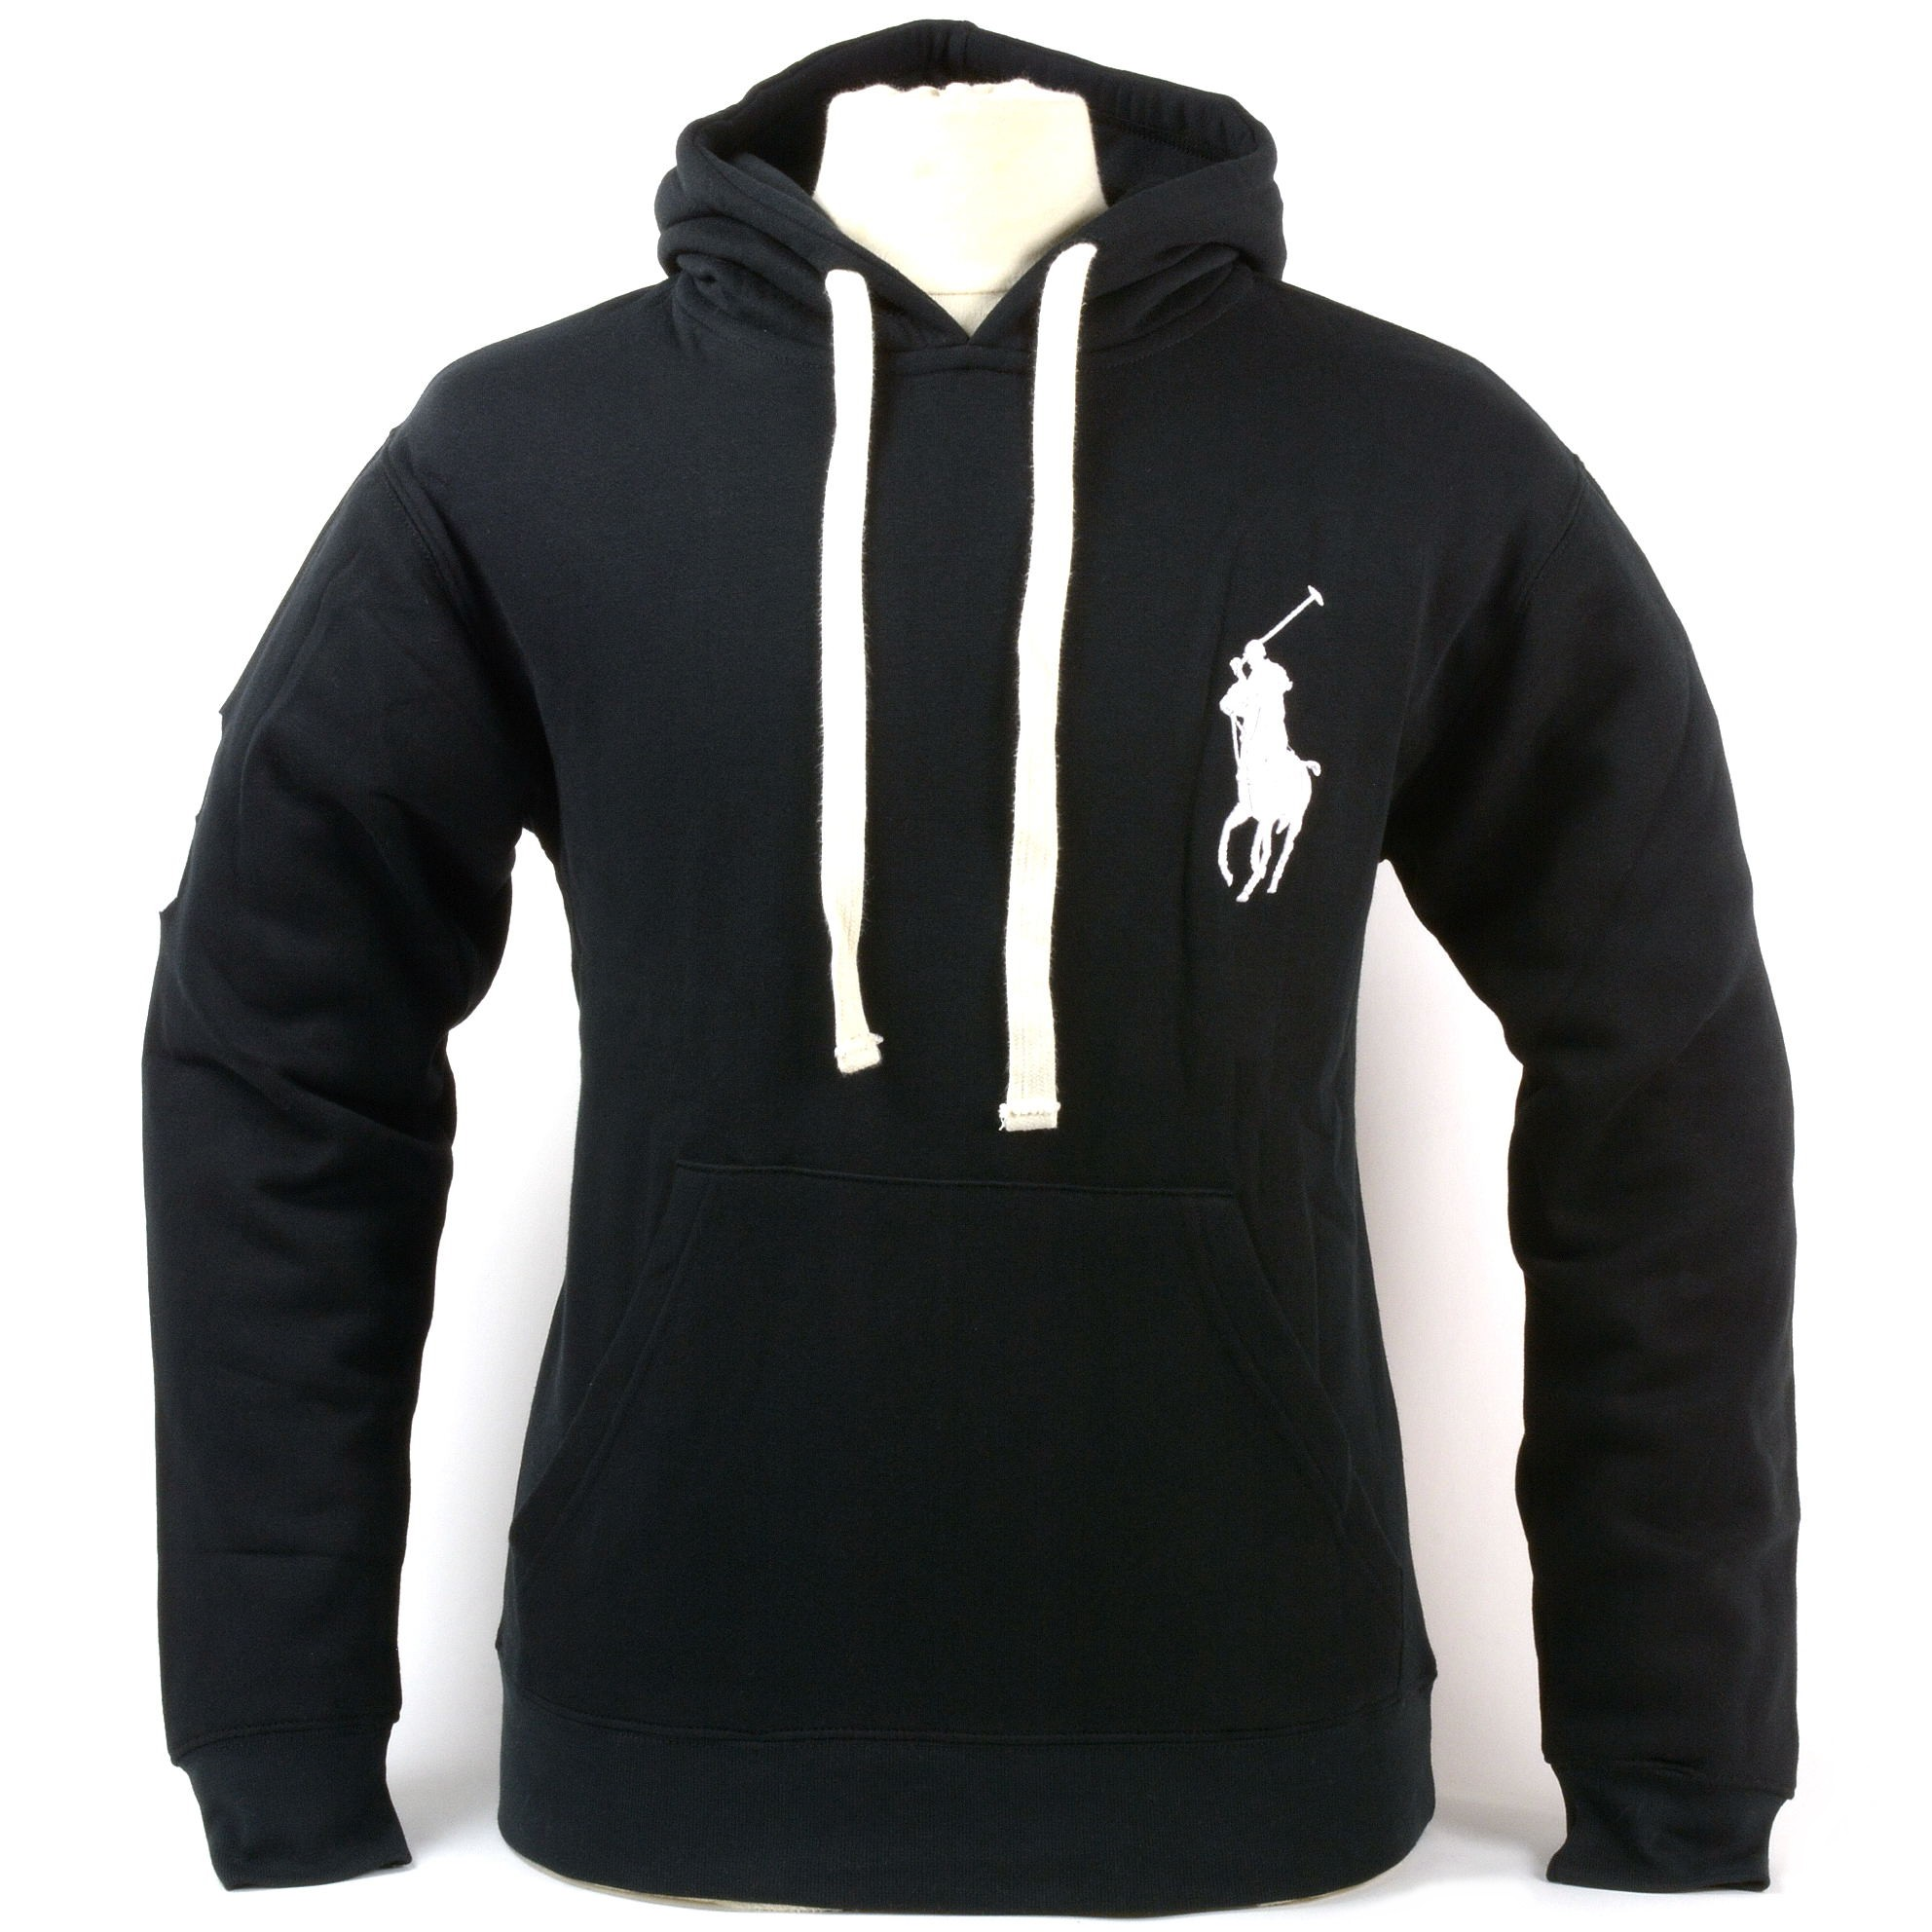 polo ralph lauren mens big pony hoodie drawstring pullover hooded sweatshirt new. Black Bedroom Furniture Sets. Home Design Ideas